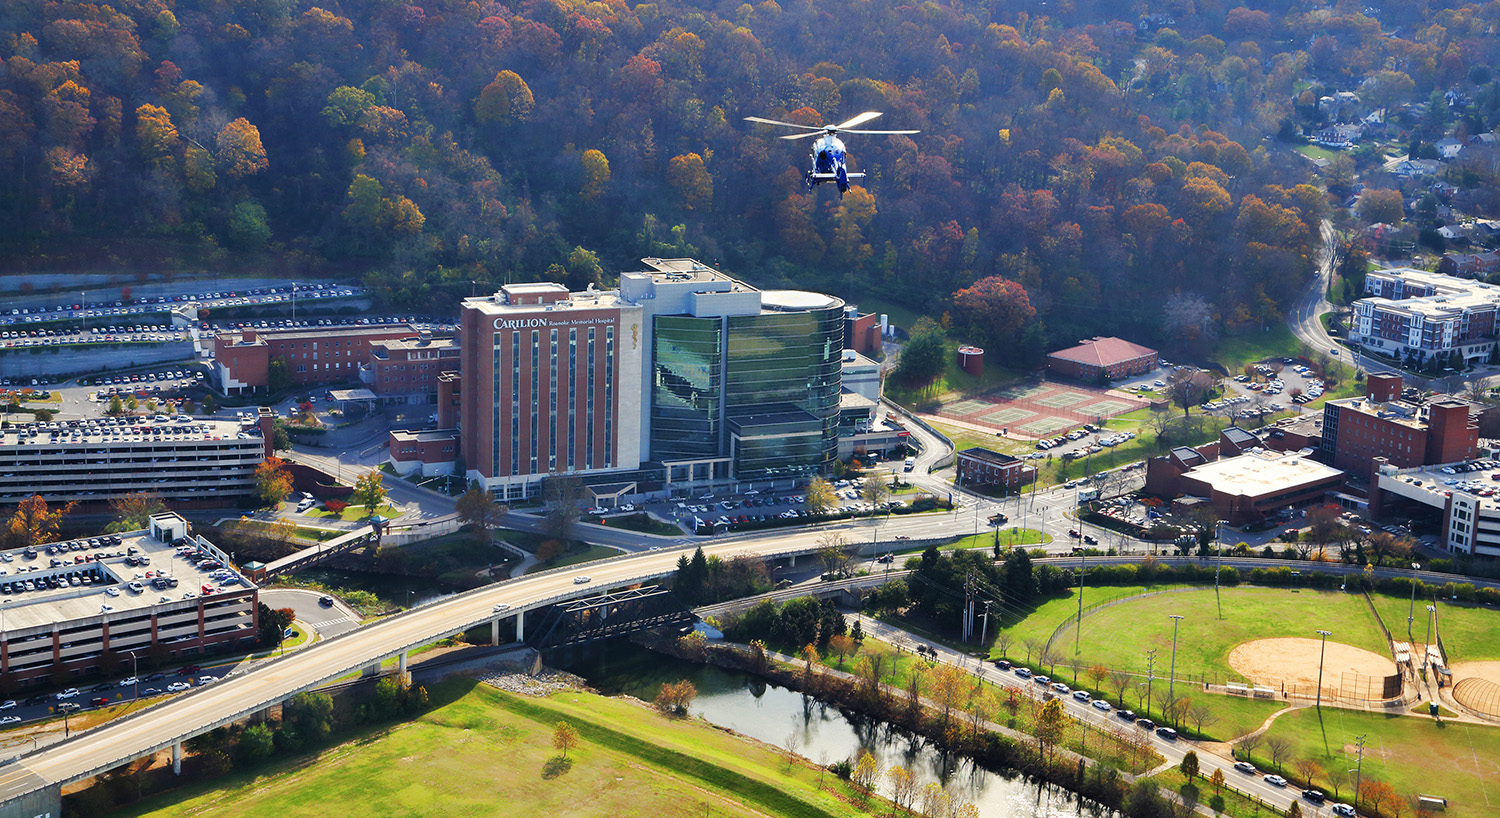 Lifeguard flying above Carilion Roanoke Memorial Hospital